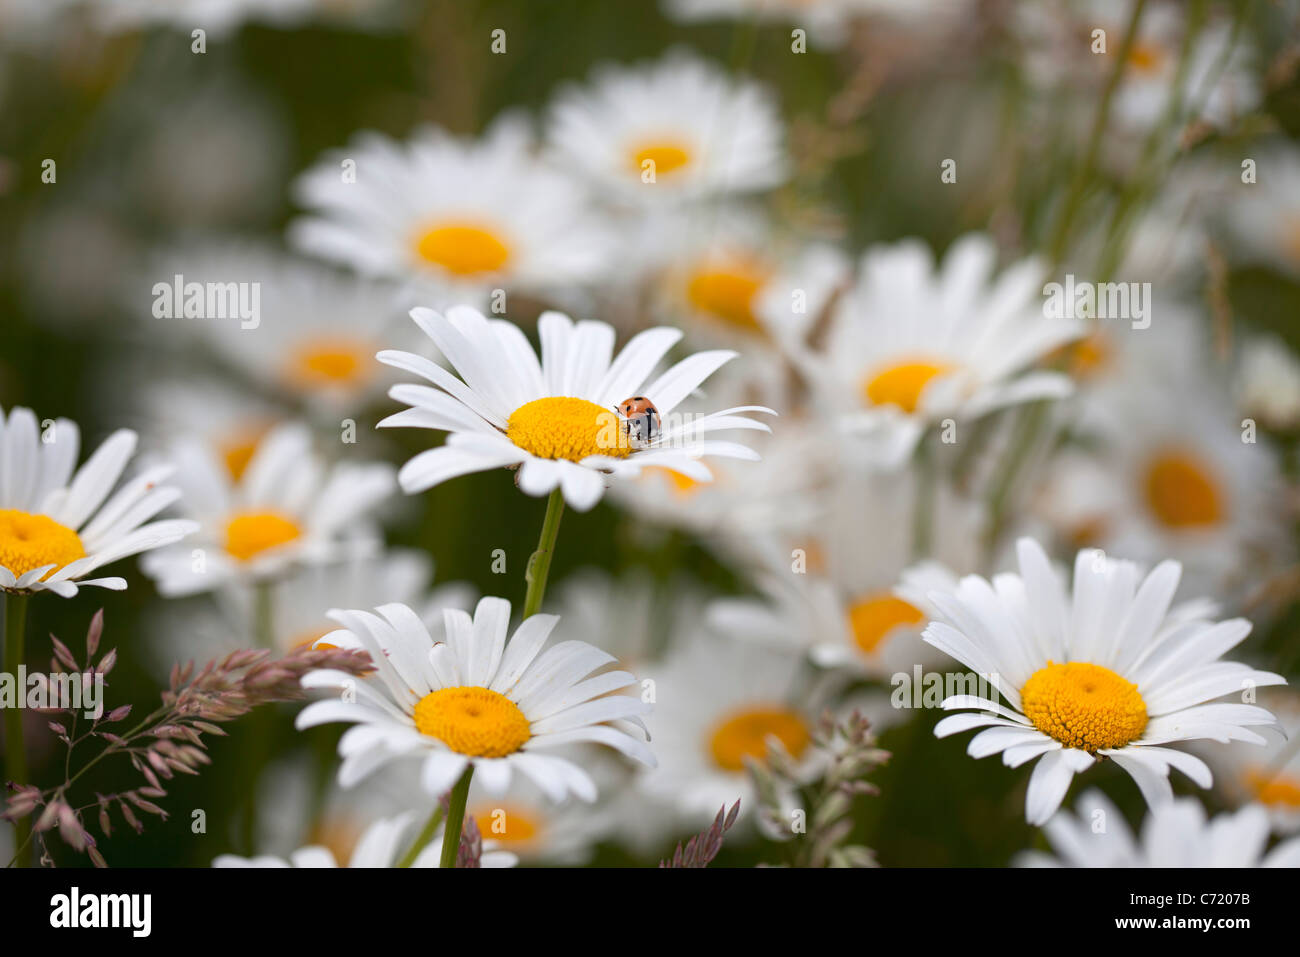 Daisies in bloom - Stock Image